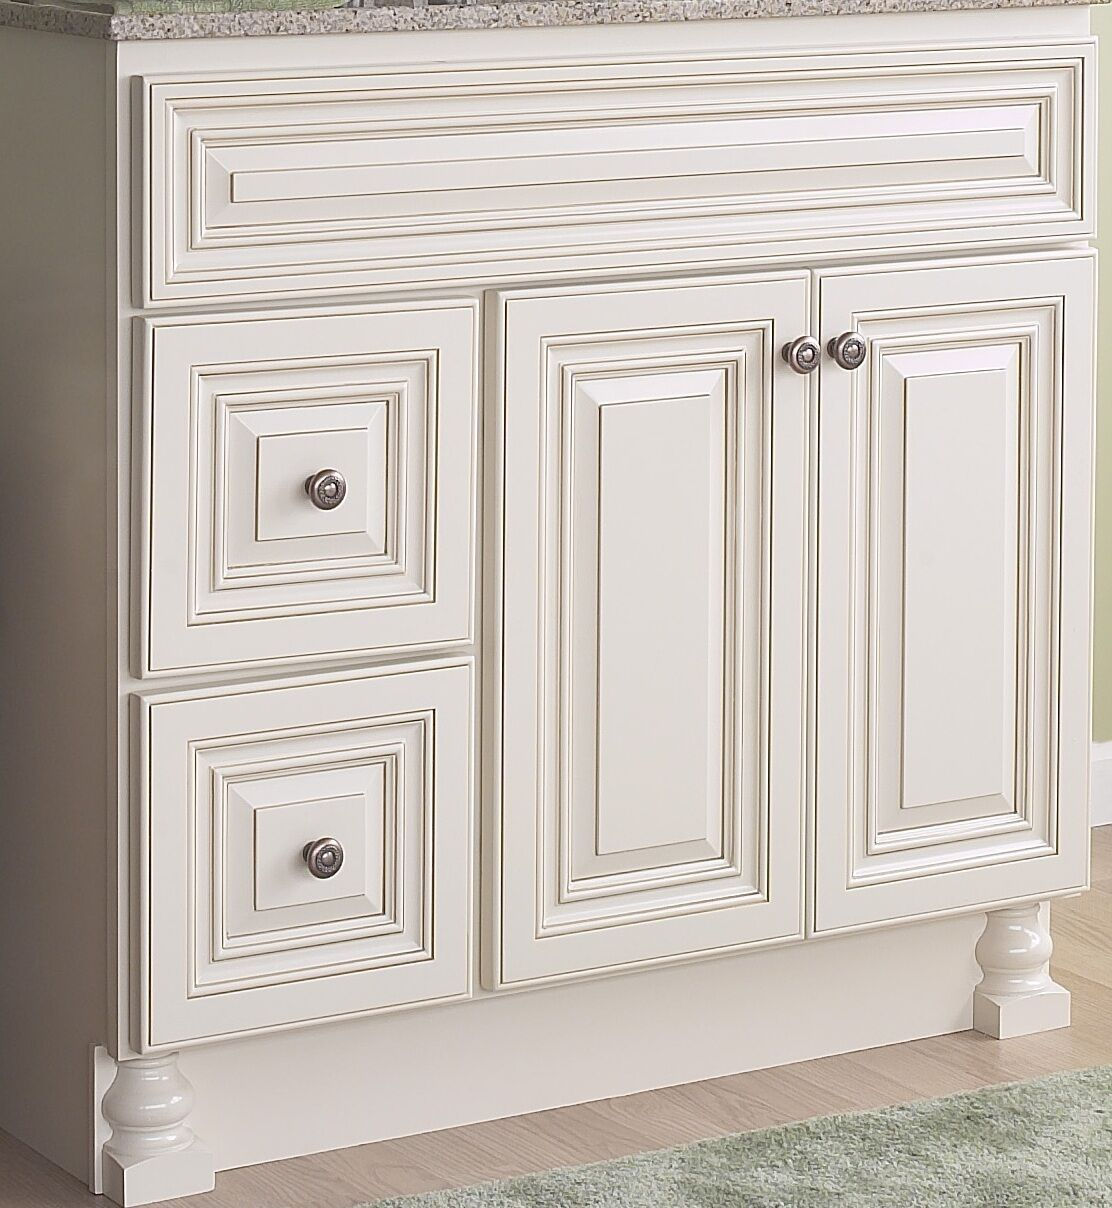 Jsi Wheaton Bathroom Vanity Base Solid Wood 36 Quot Cream 2